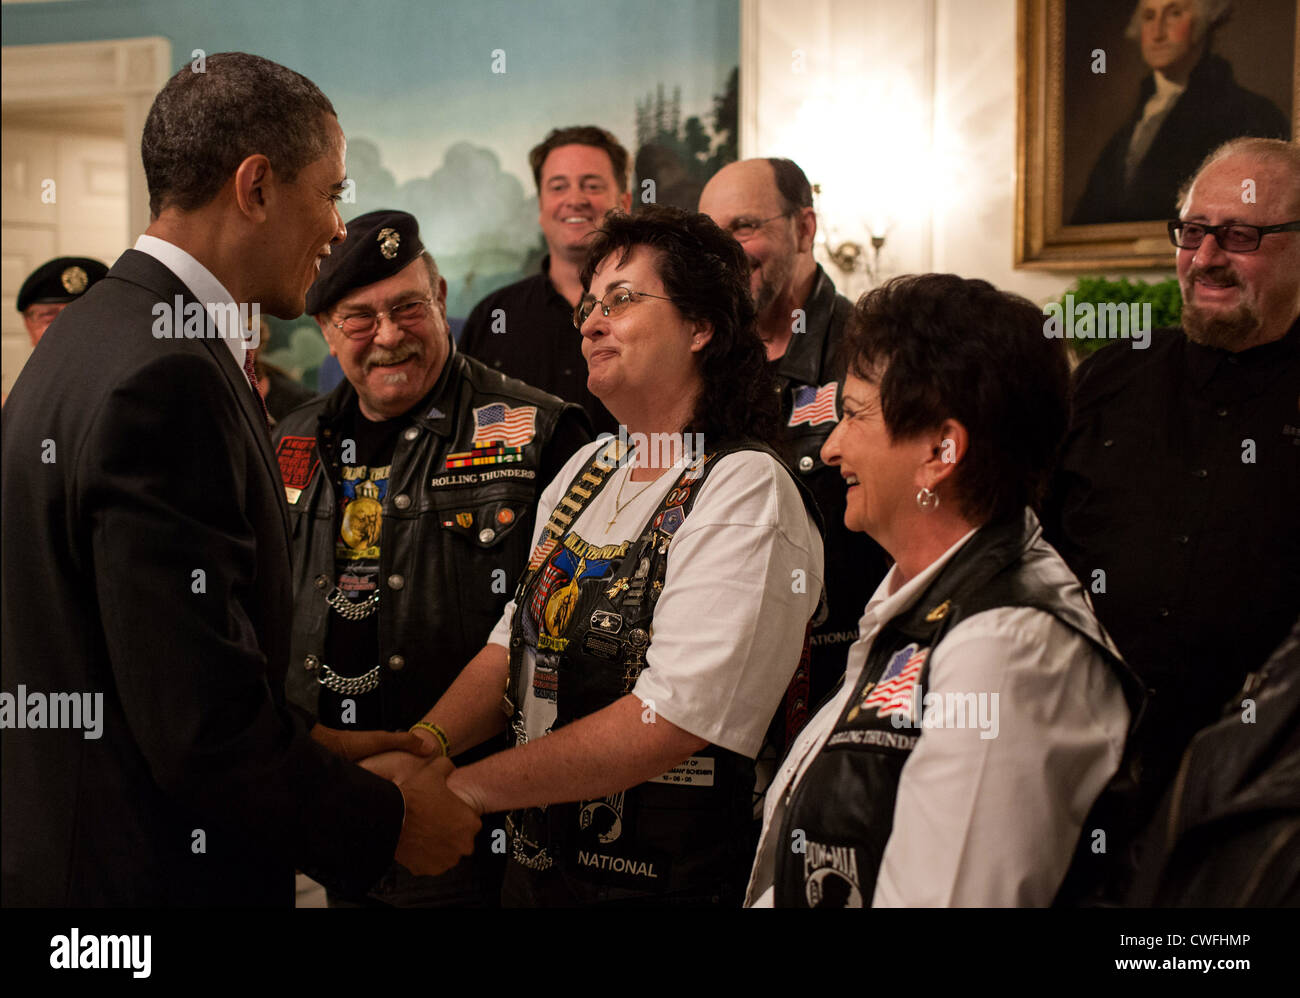 President Barack Obama greets members of the Rolling Thunder in the Diplomatic Reception Room of the White House, - Stock Image